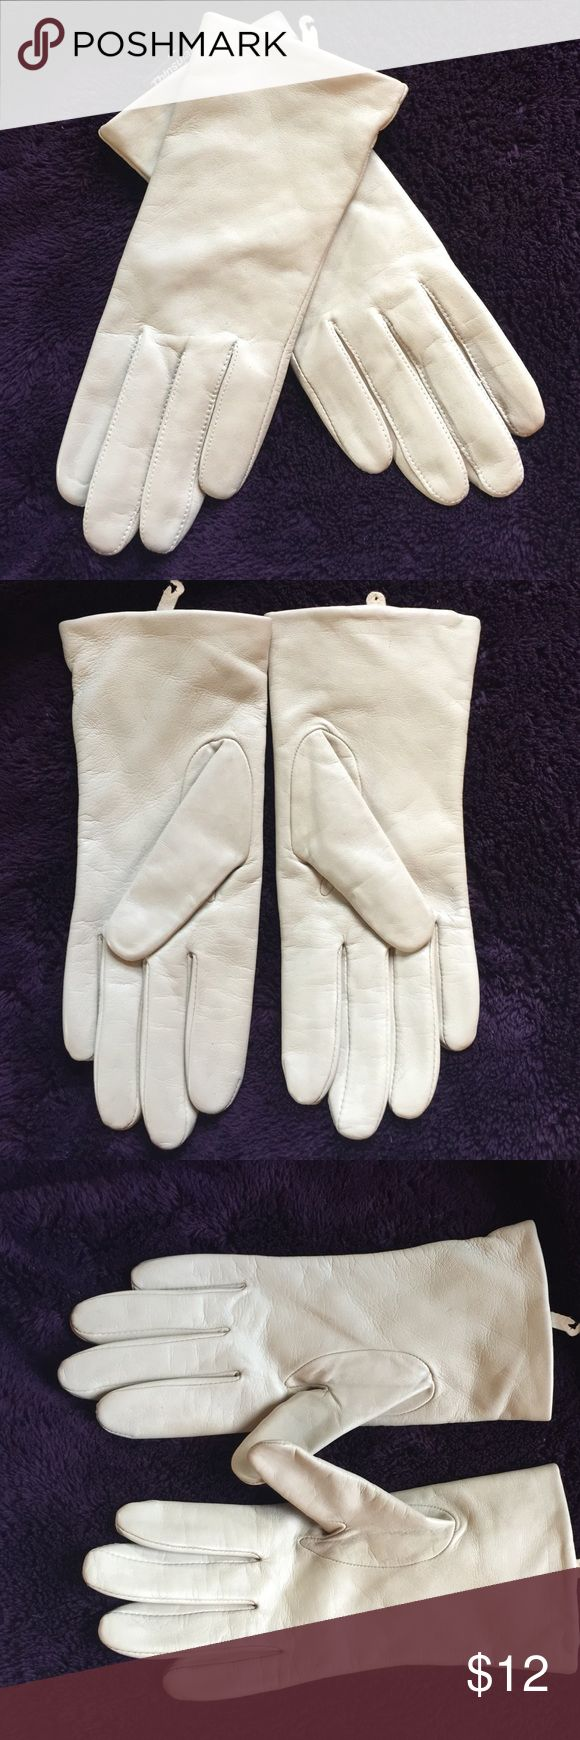 Thinsulate leather driving gloves - Thinsulate Leather Driving Gloves Med